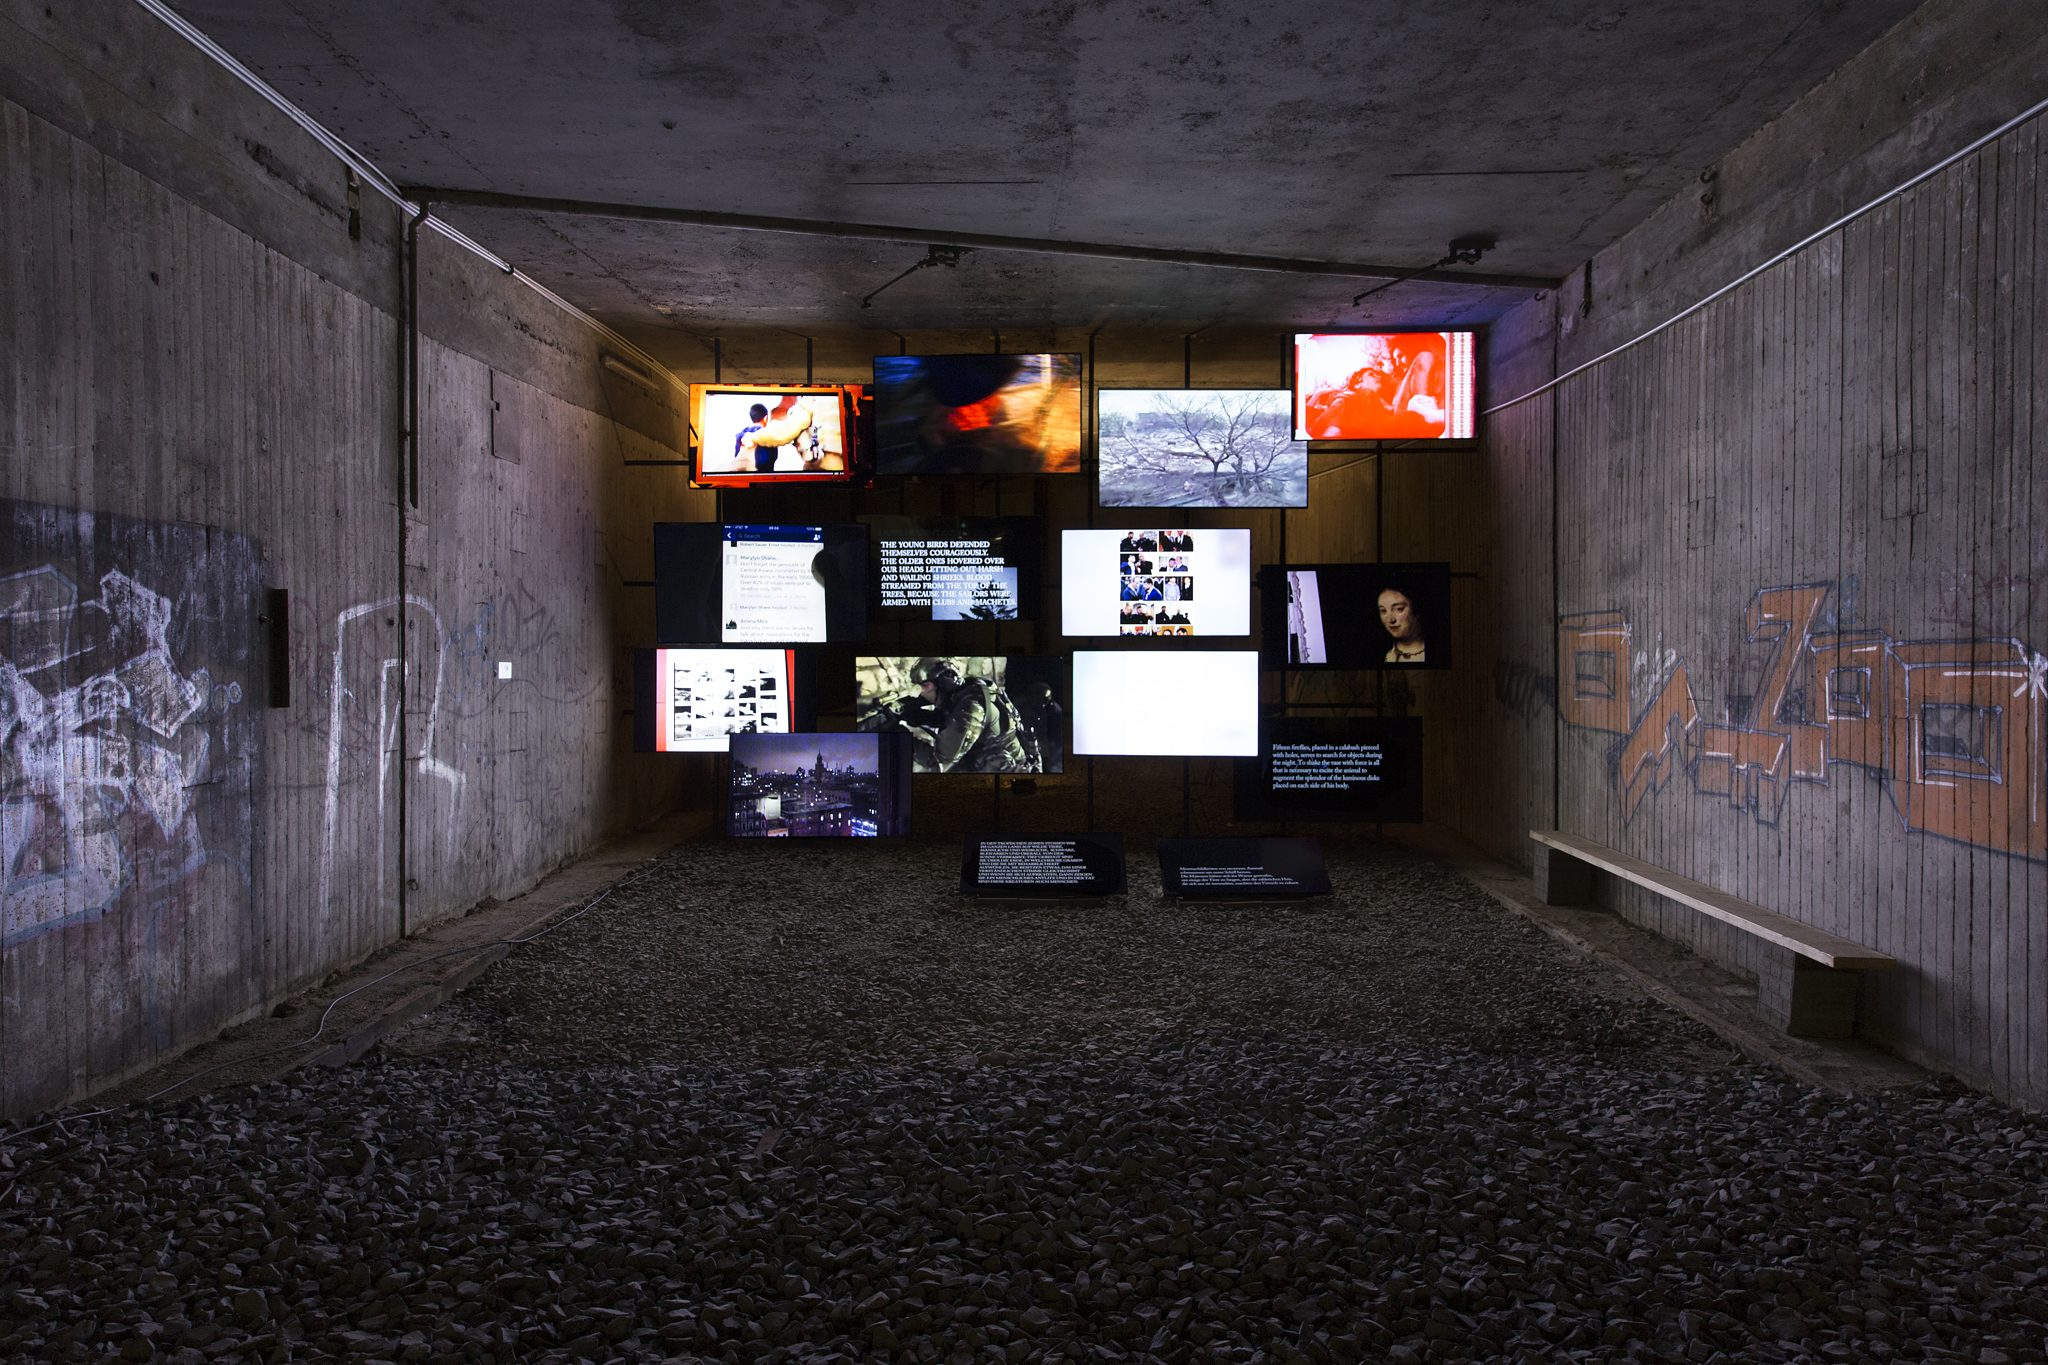 Michel Auder, The Course of Empire, 2017, Vierzehnkanal-Digitalvideo-installation, Ehemaliger unterirdischer Bahnhof (KulturBahnhof), Kassel, documenta 14, Foto: Jasper Kettner